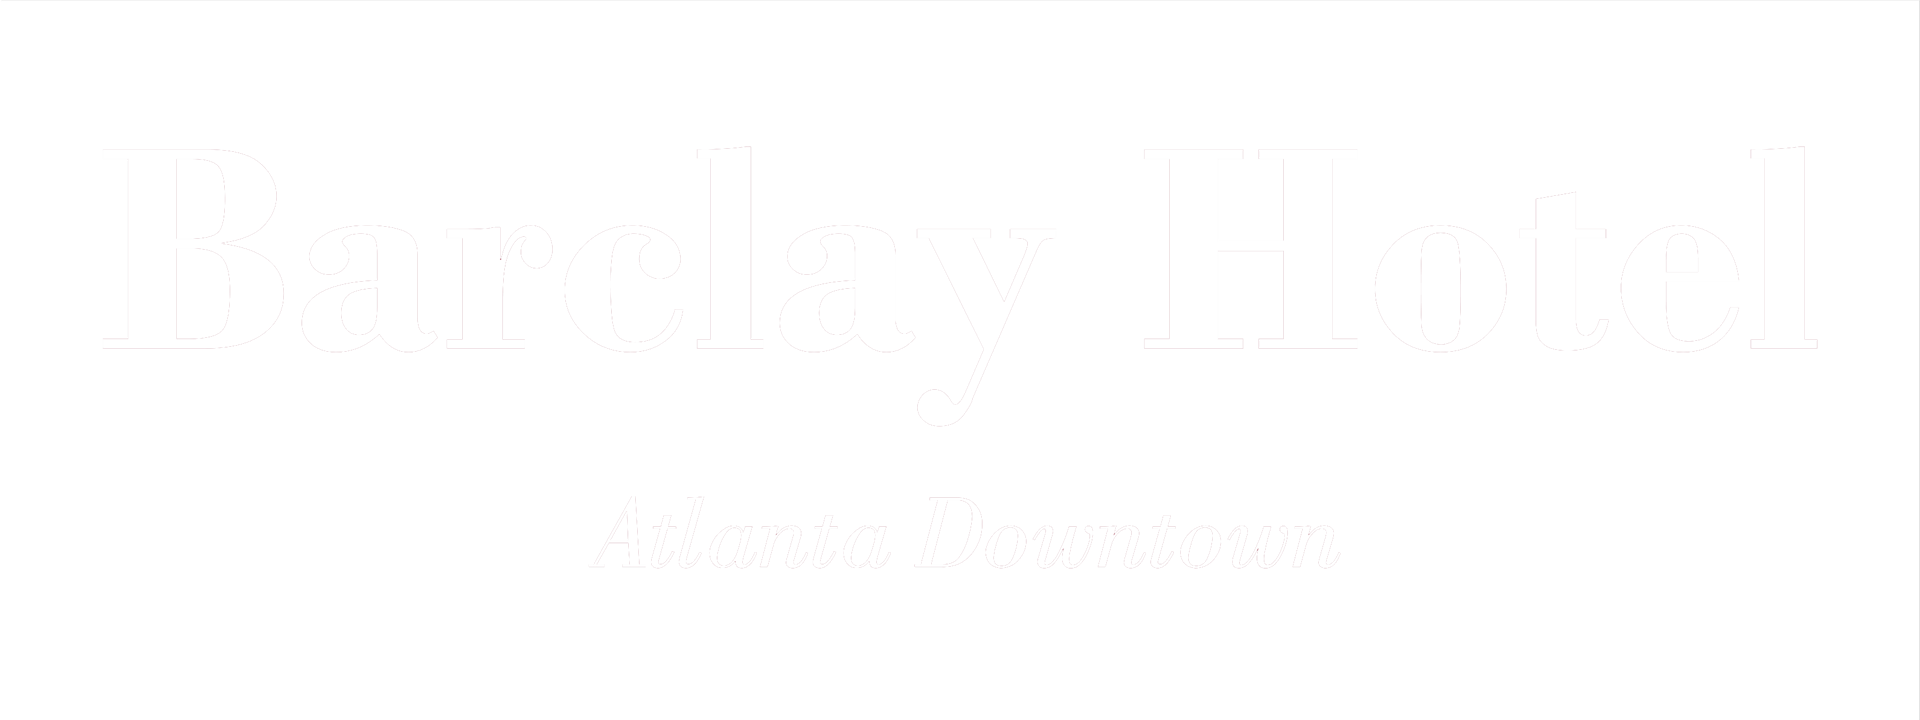 Barclay Hotel Atlanta Downtown